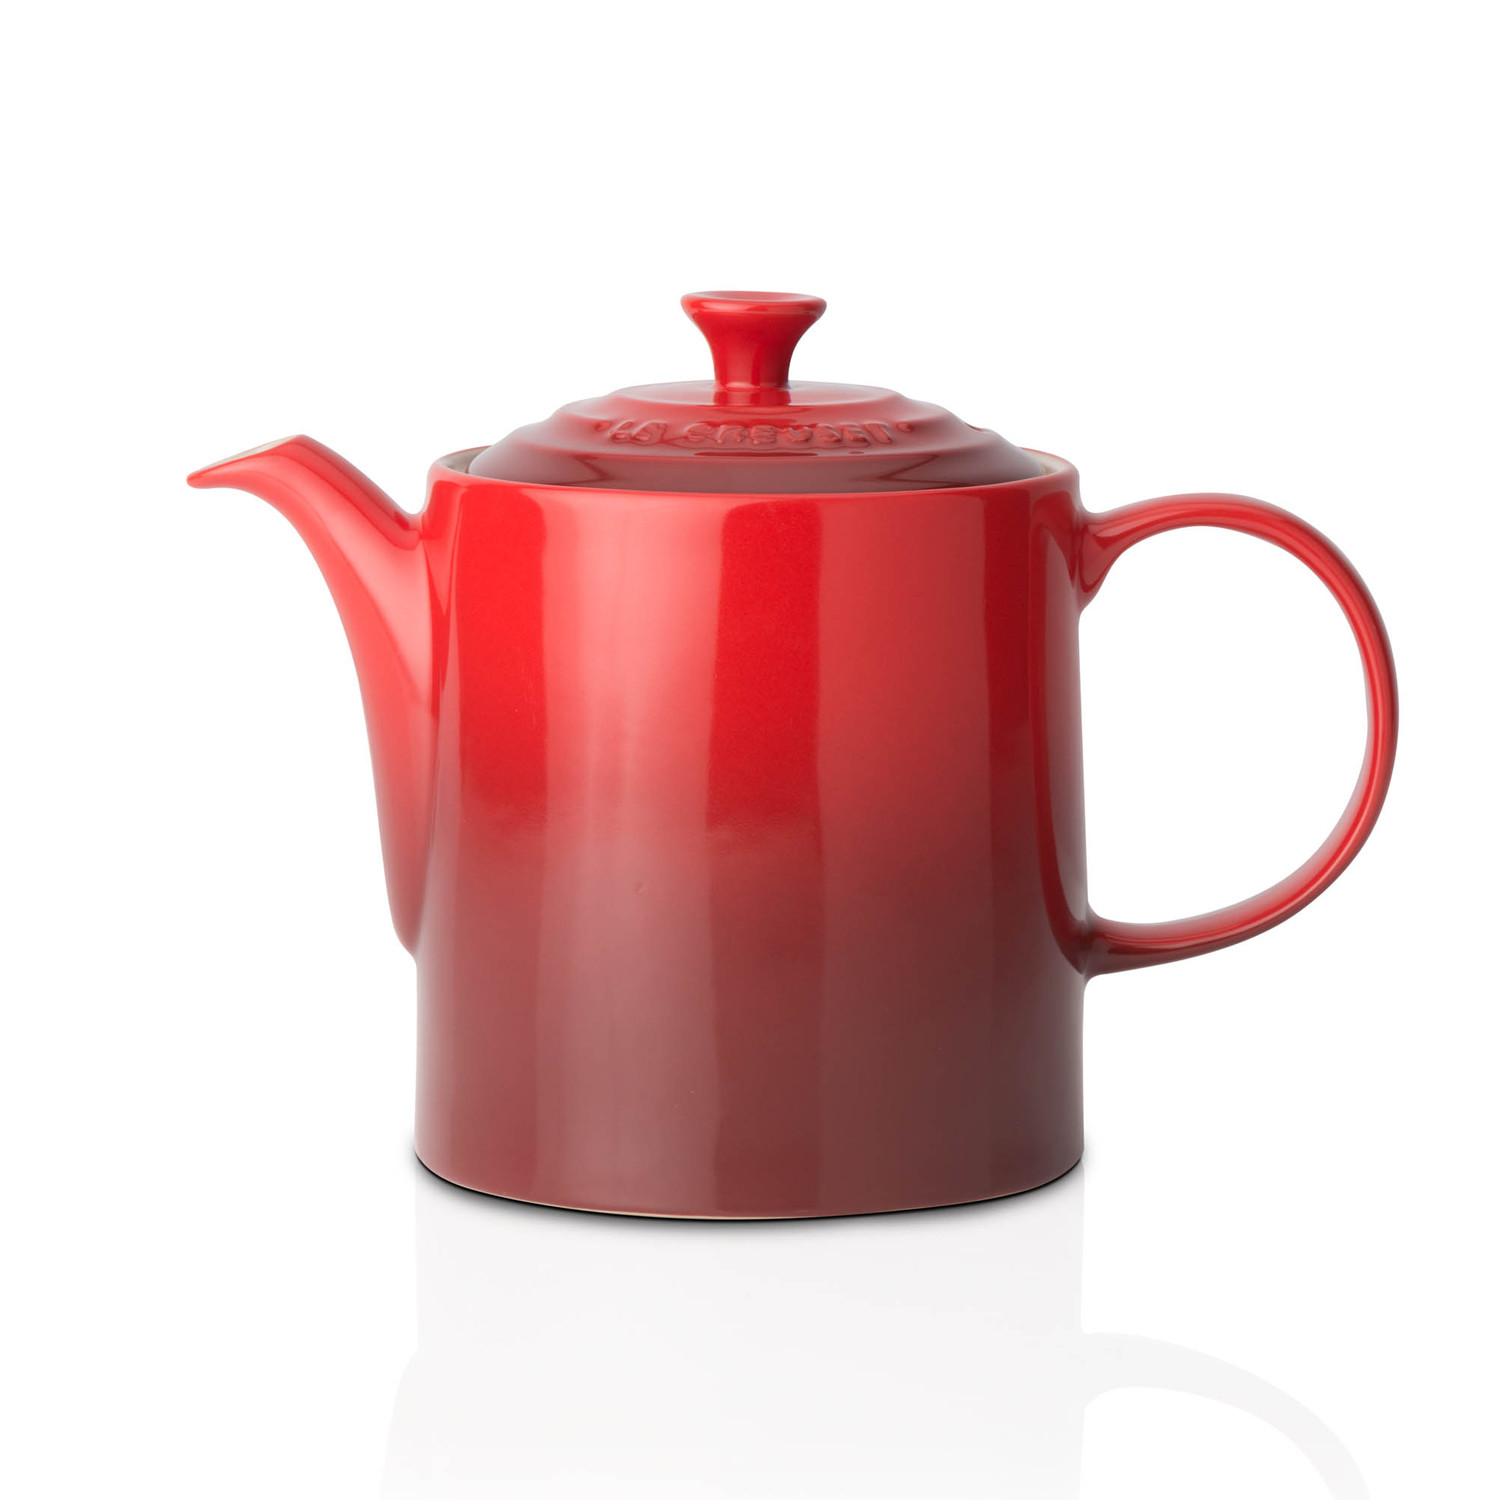 15 Nice Red Wing Magnolia Vase 2021 free download red wing magnolia vase of https www meadowsandbyrne com furniture html 2017 09 28t0851 inside grand teapot cerise